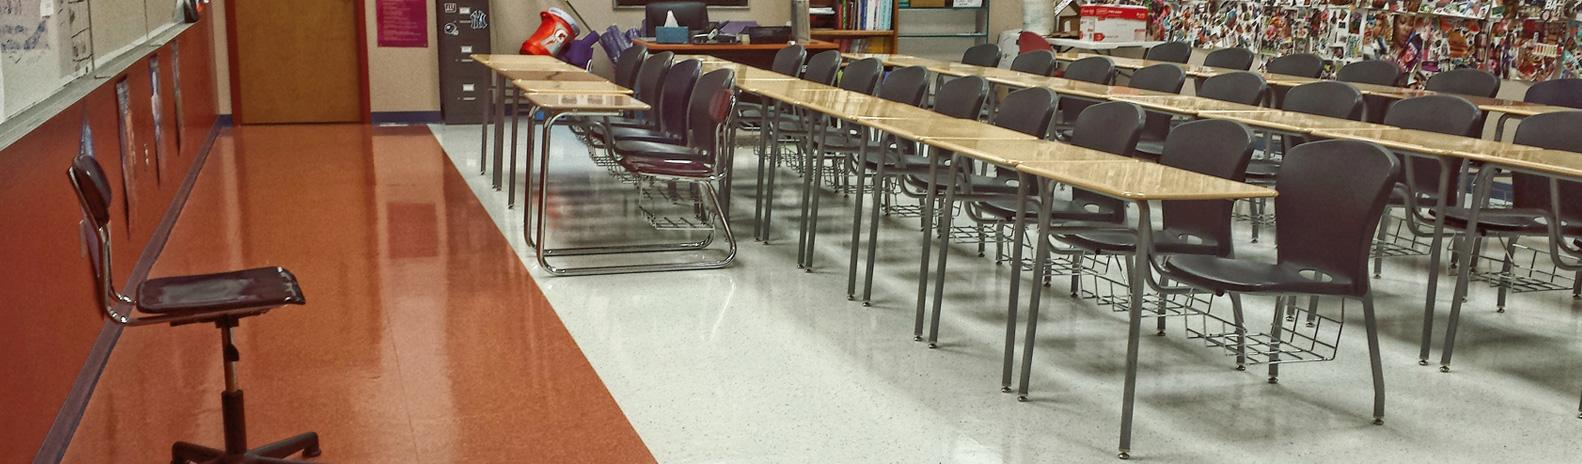 school cleaning and maintenance